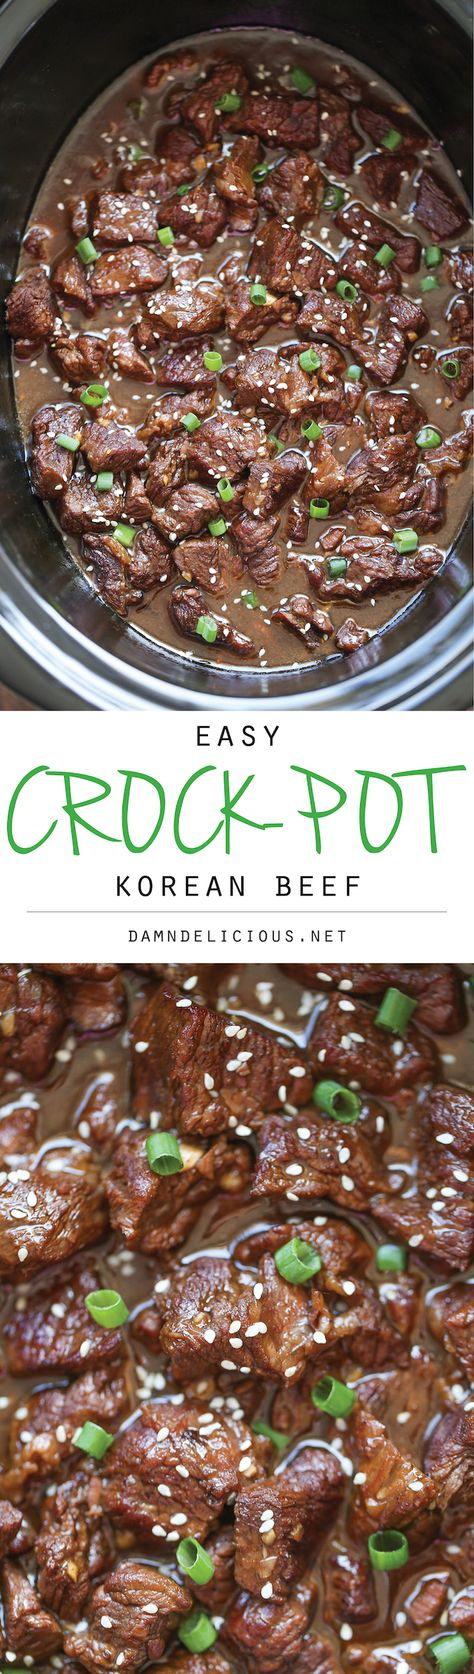 Slow Cooker Korean Beef - Amazingly tender, flavorful Korean beef easily made in the crockpot with just 10 min prep. It doesn't get easier than that!